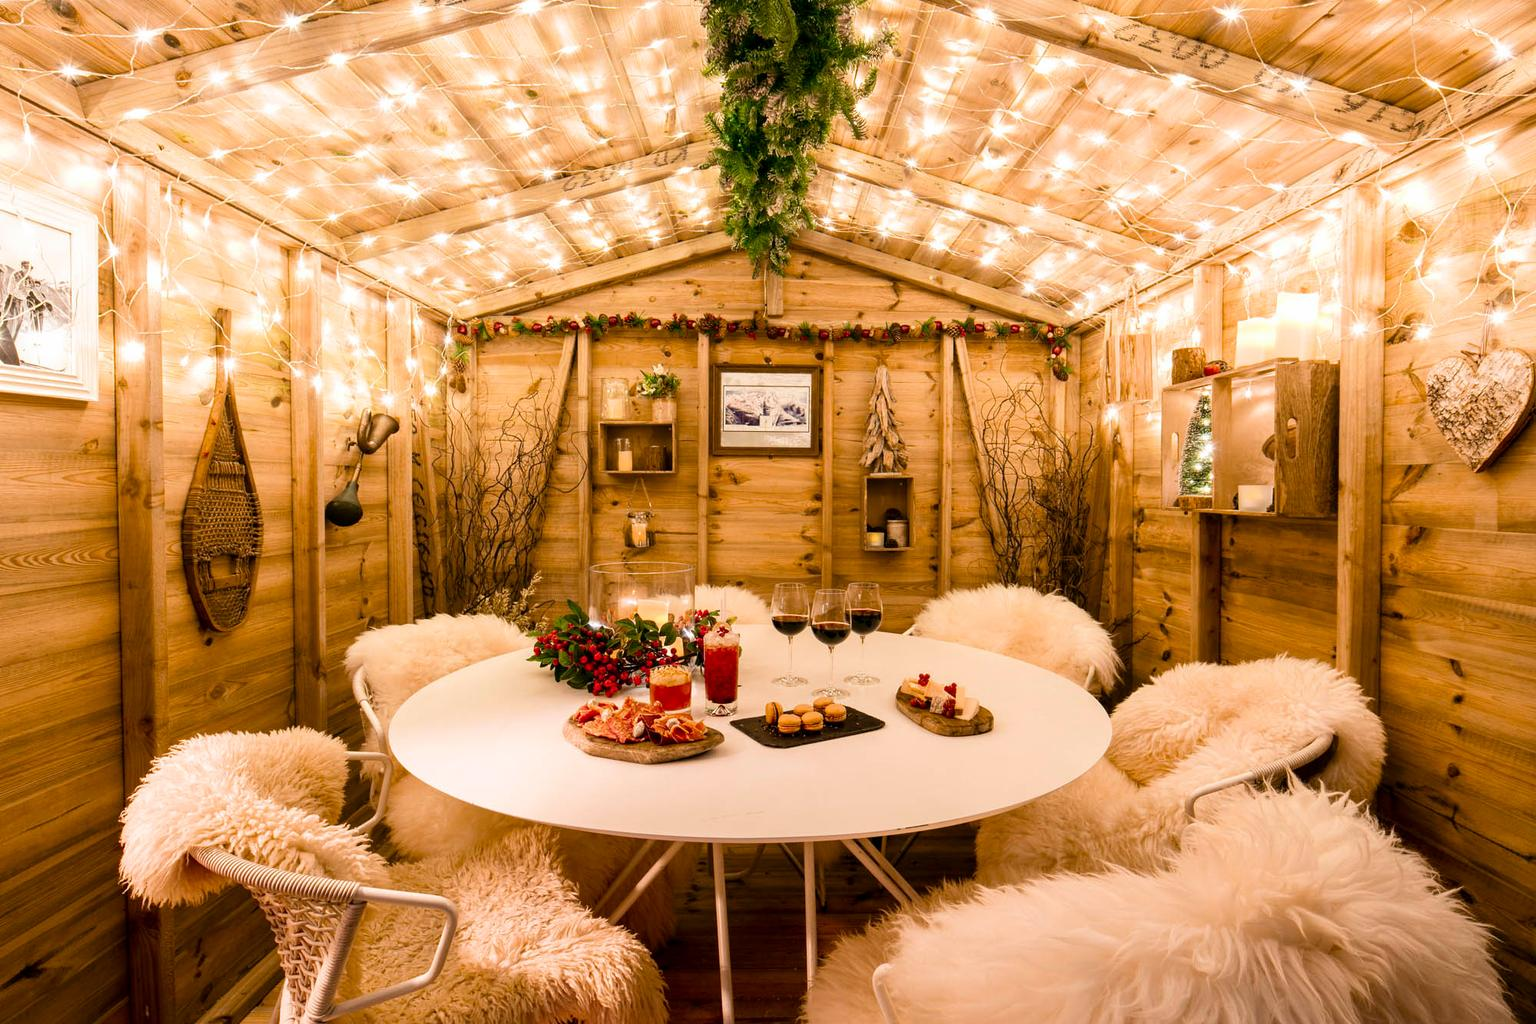 The Best Of London's Quirkiest And Festive Winter Pop-Ups